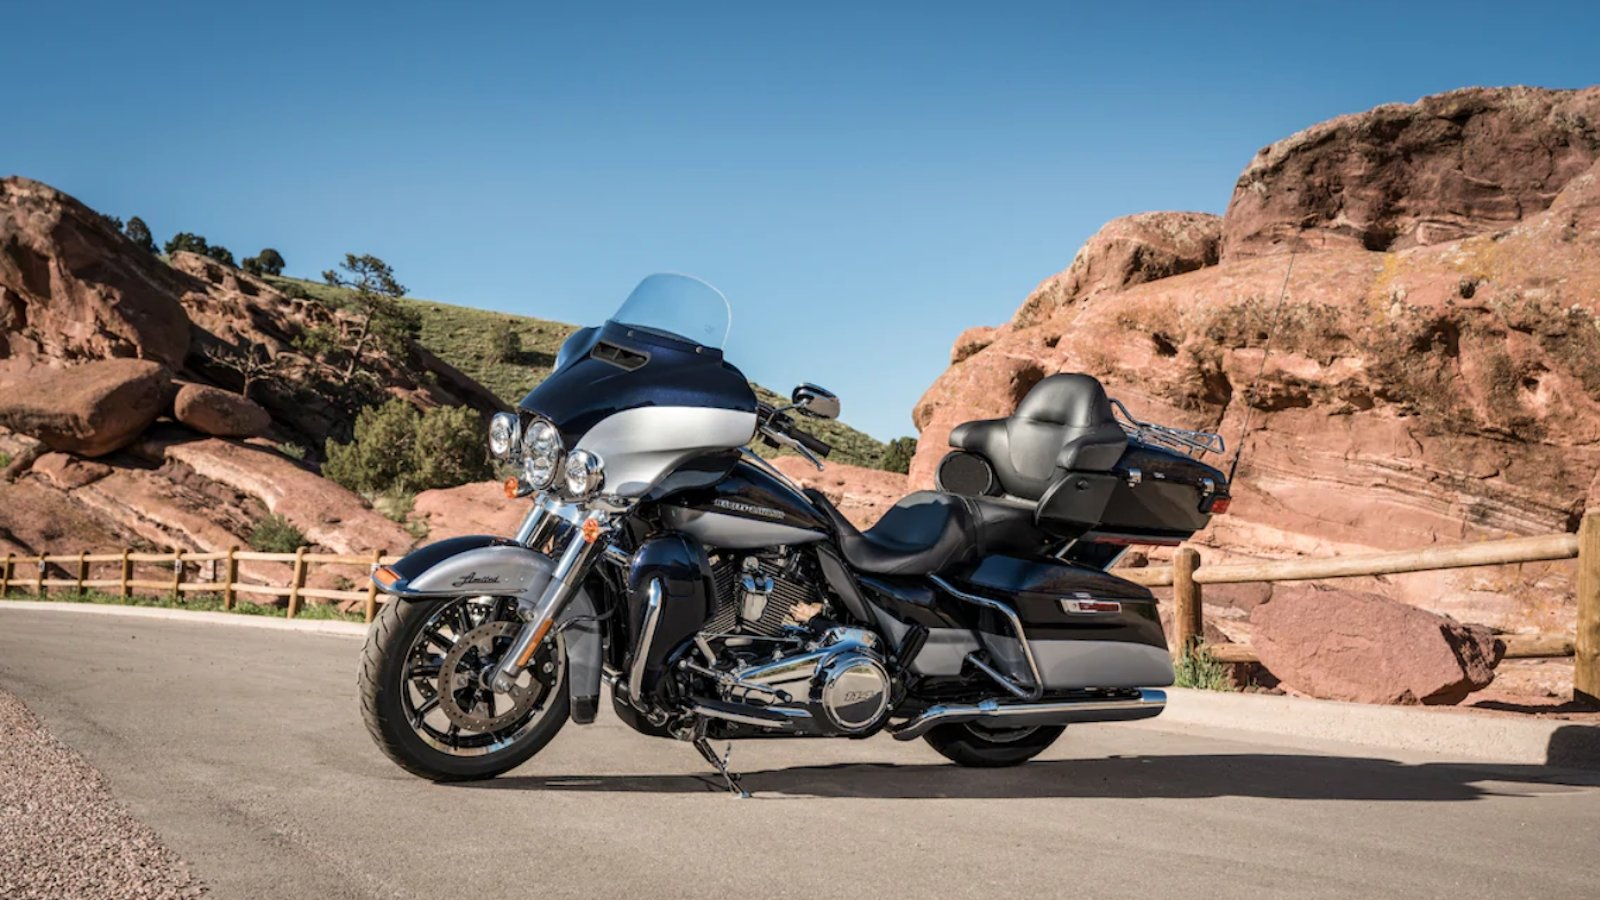 2019 HarleyDavidson Ultra Limited  Ultra Limited Low  Top Speed